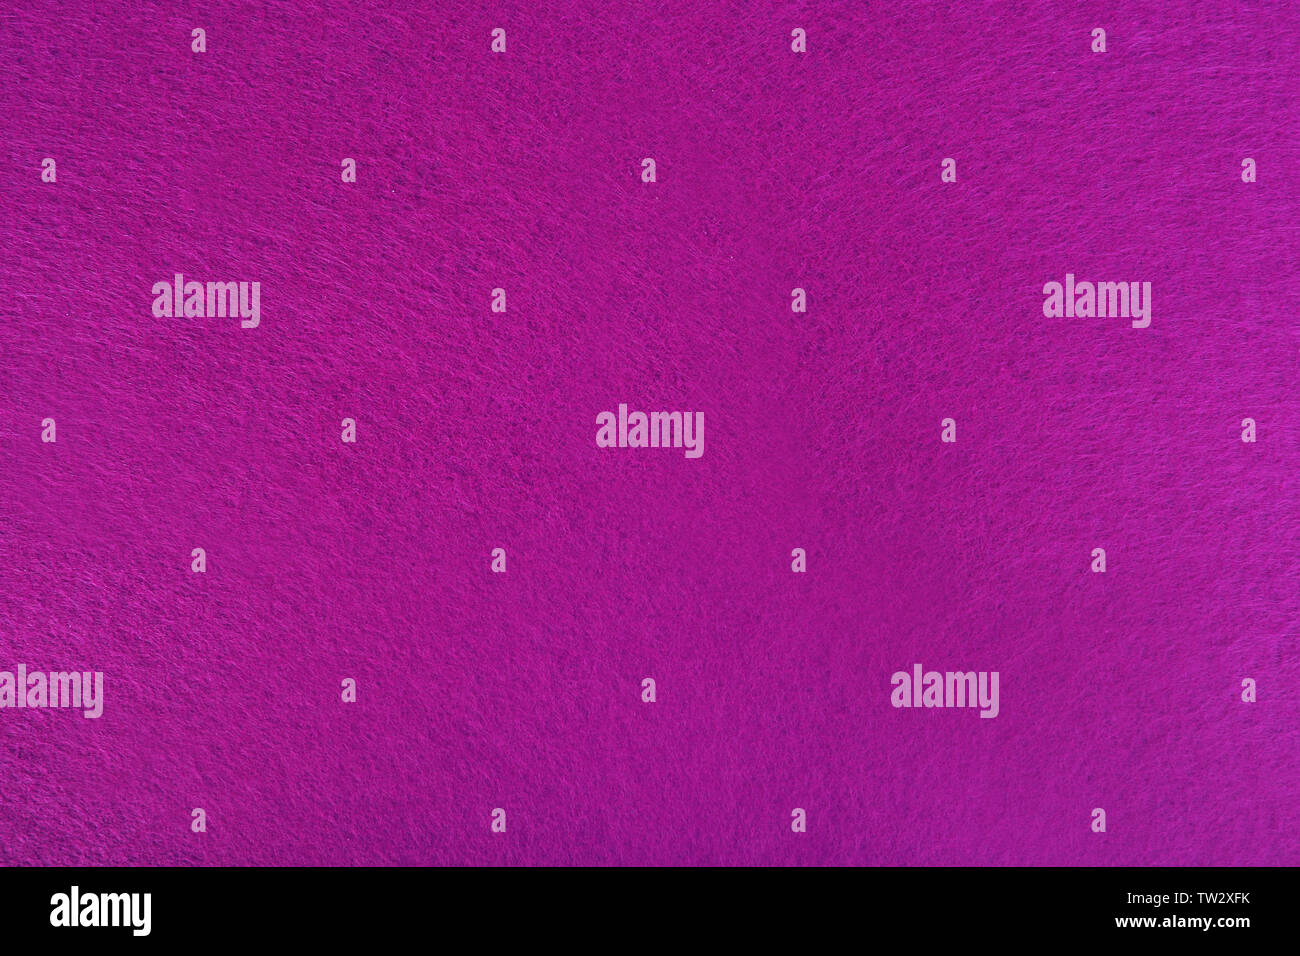 Lilac felt texture as background - Stock Image